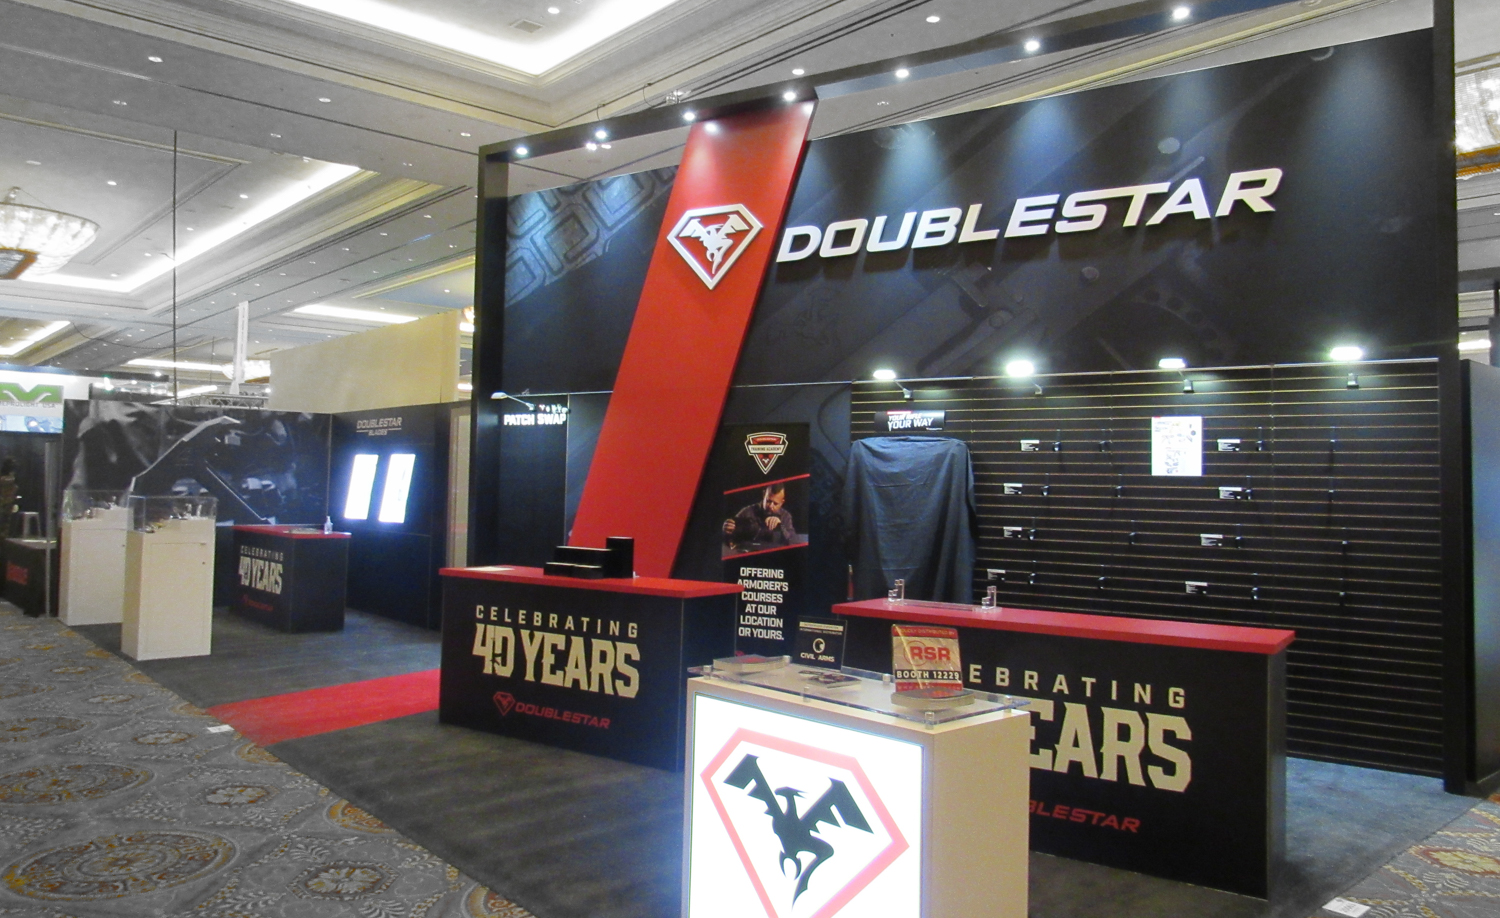 Double Star Showfloor